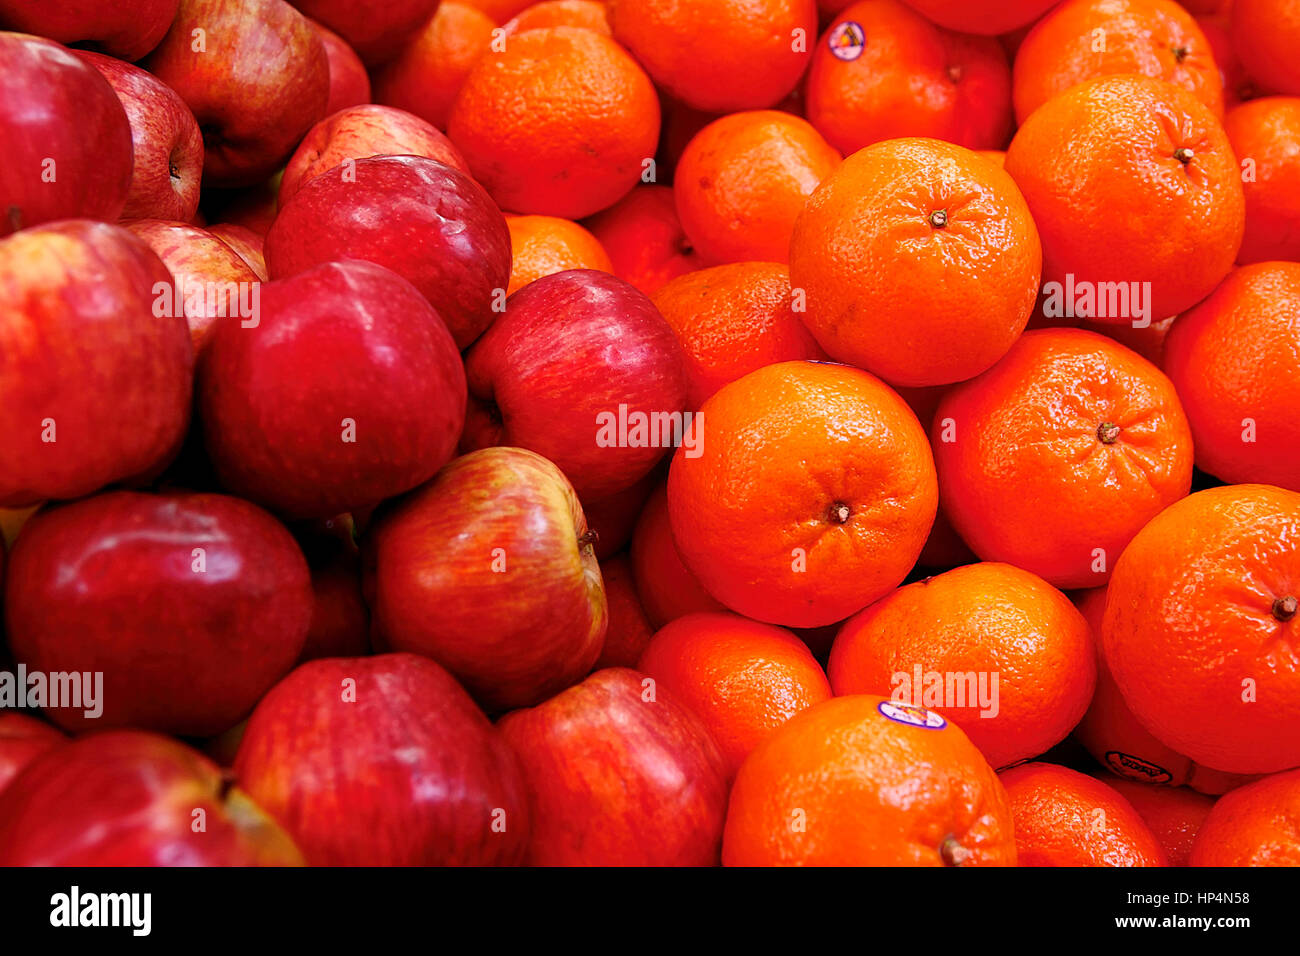 close up apples and oranges at shop in carmel market, tel aviv, israel Stock Photo